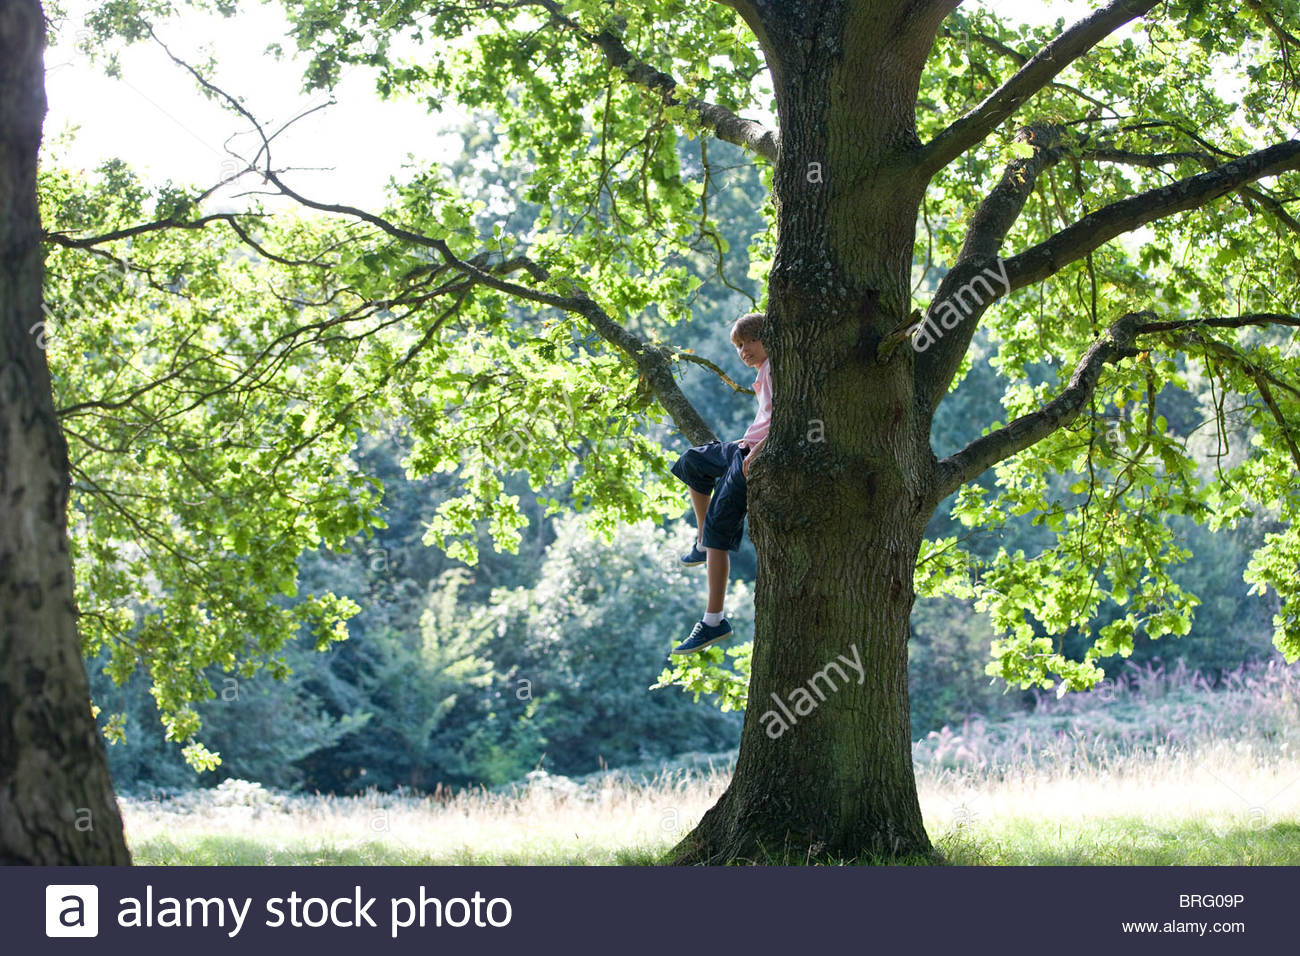 A young boy sitting in a tree - Stock Image